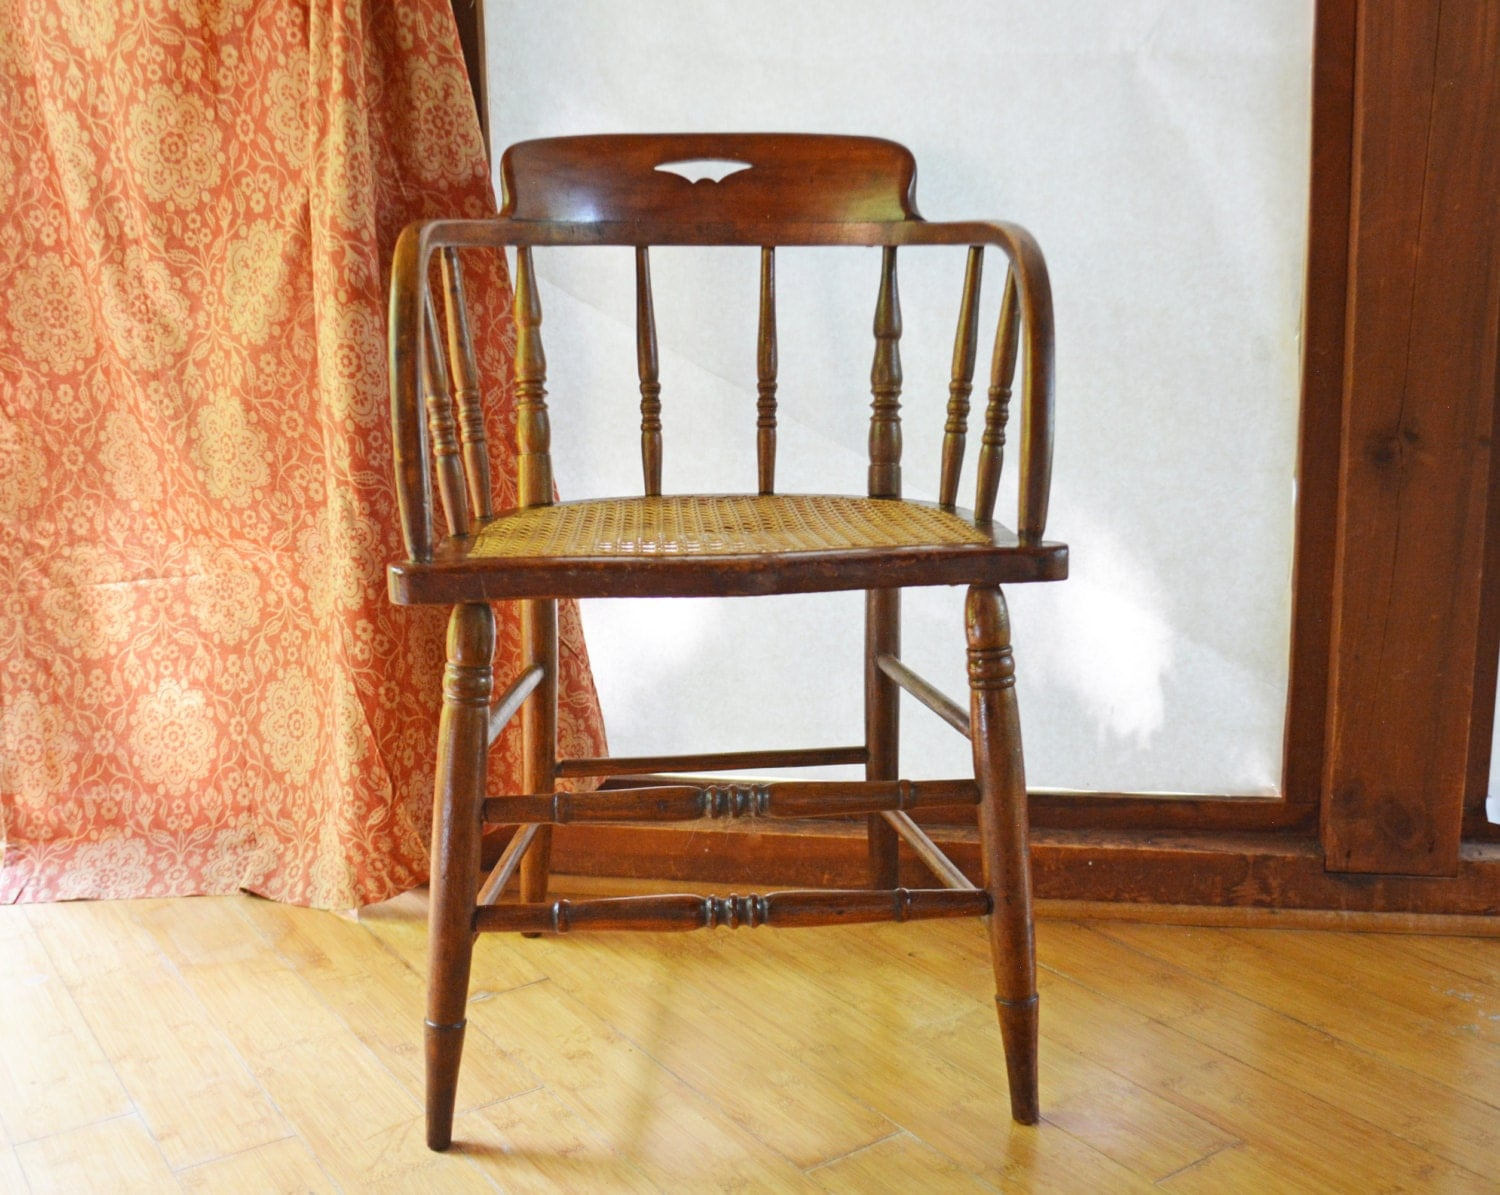 Antique barrel chair - Antique Wood Chair Barrel Back Wooden Chair Small Captains Chair Spindle Back Chair